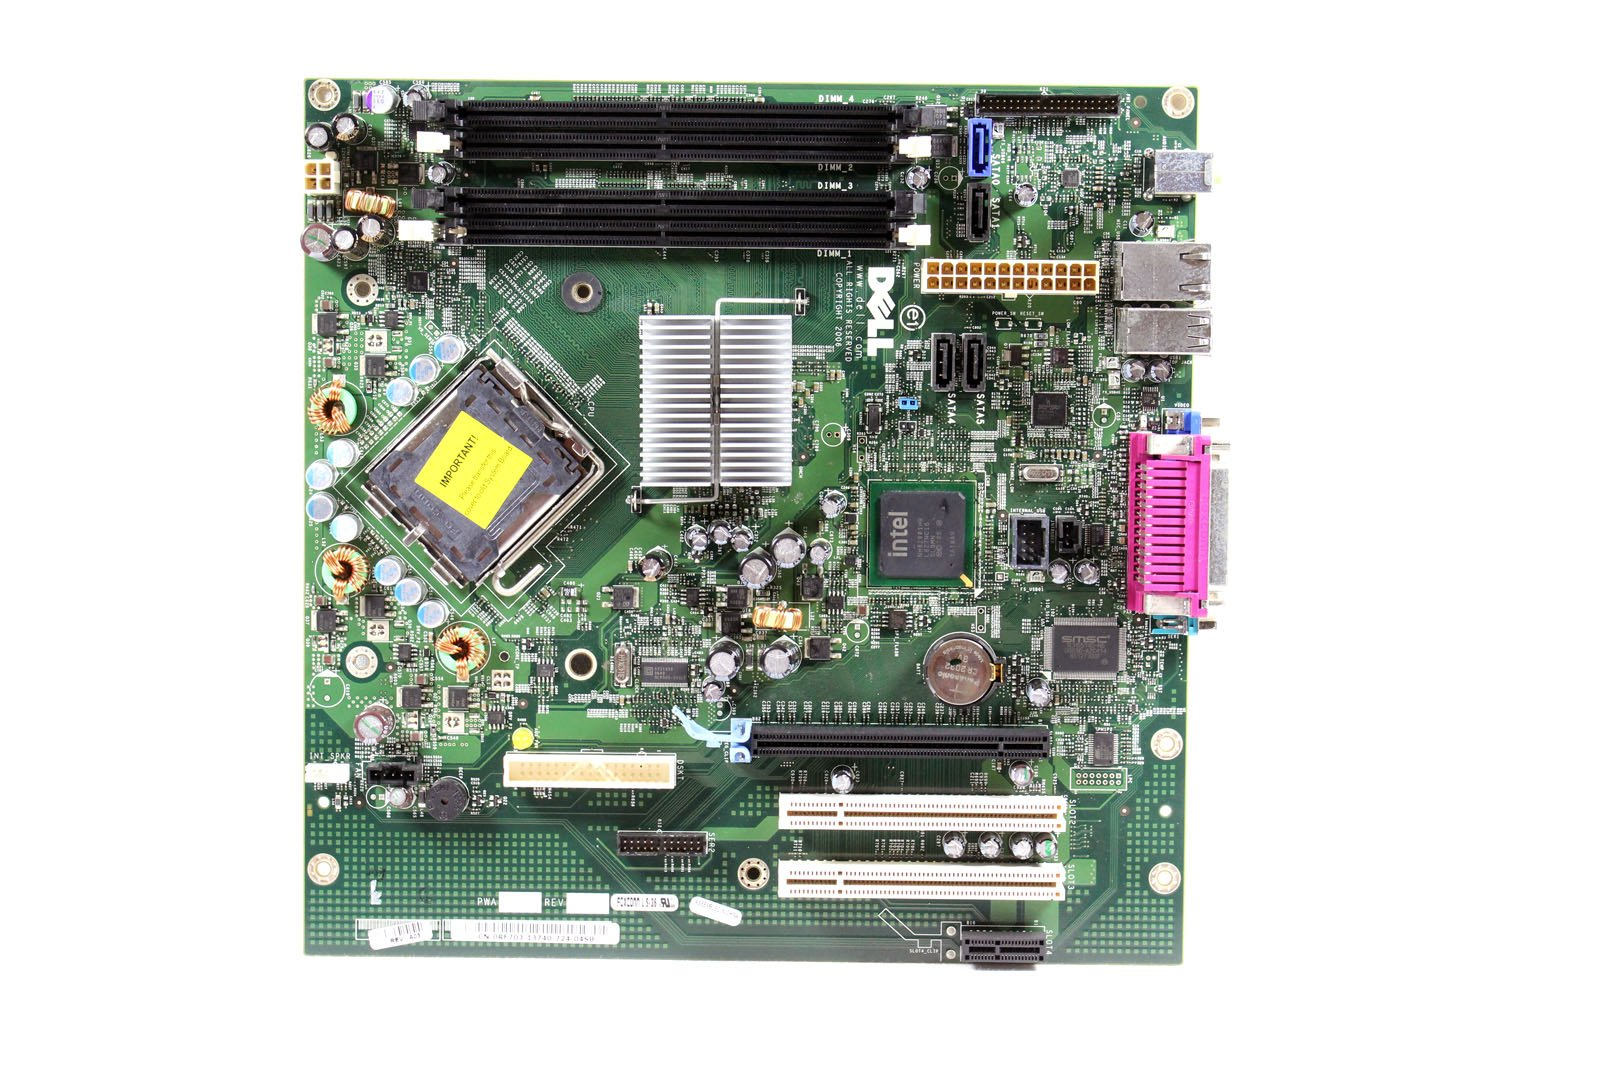 Genuine Dell Motherboard Logic Board For Optiplex 745 Small Mini Tower SMT Systems Intel Q965 Express DIMM Memory Chipset Compatible Part Numbers: TY565, HR330, KW626, RF703